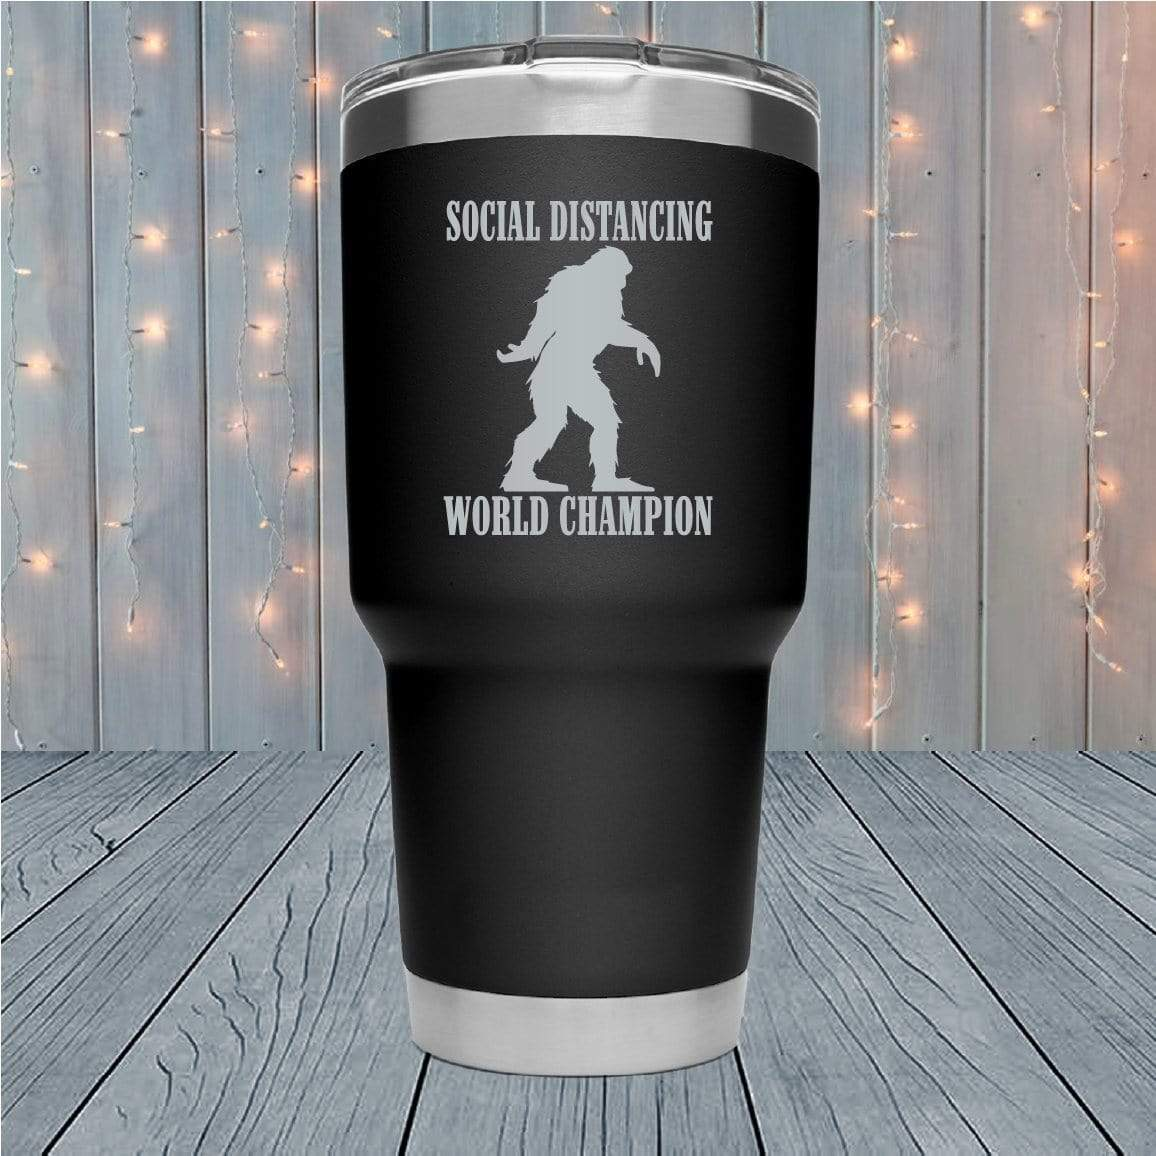 Social Distancing World Champion Laser Engraved Tumblers